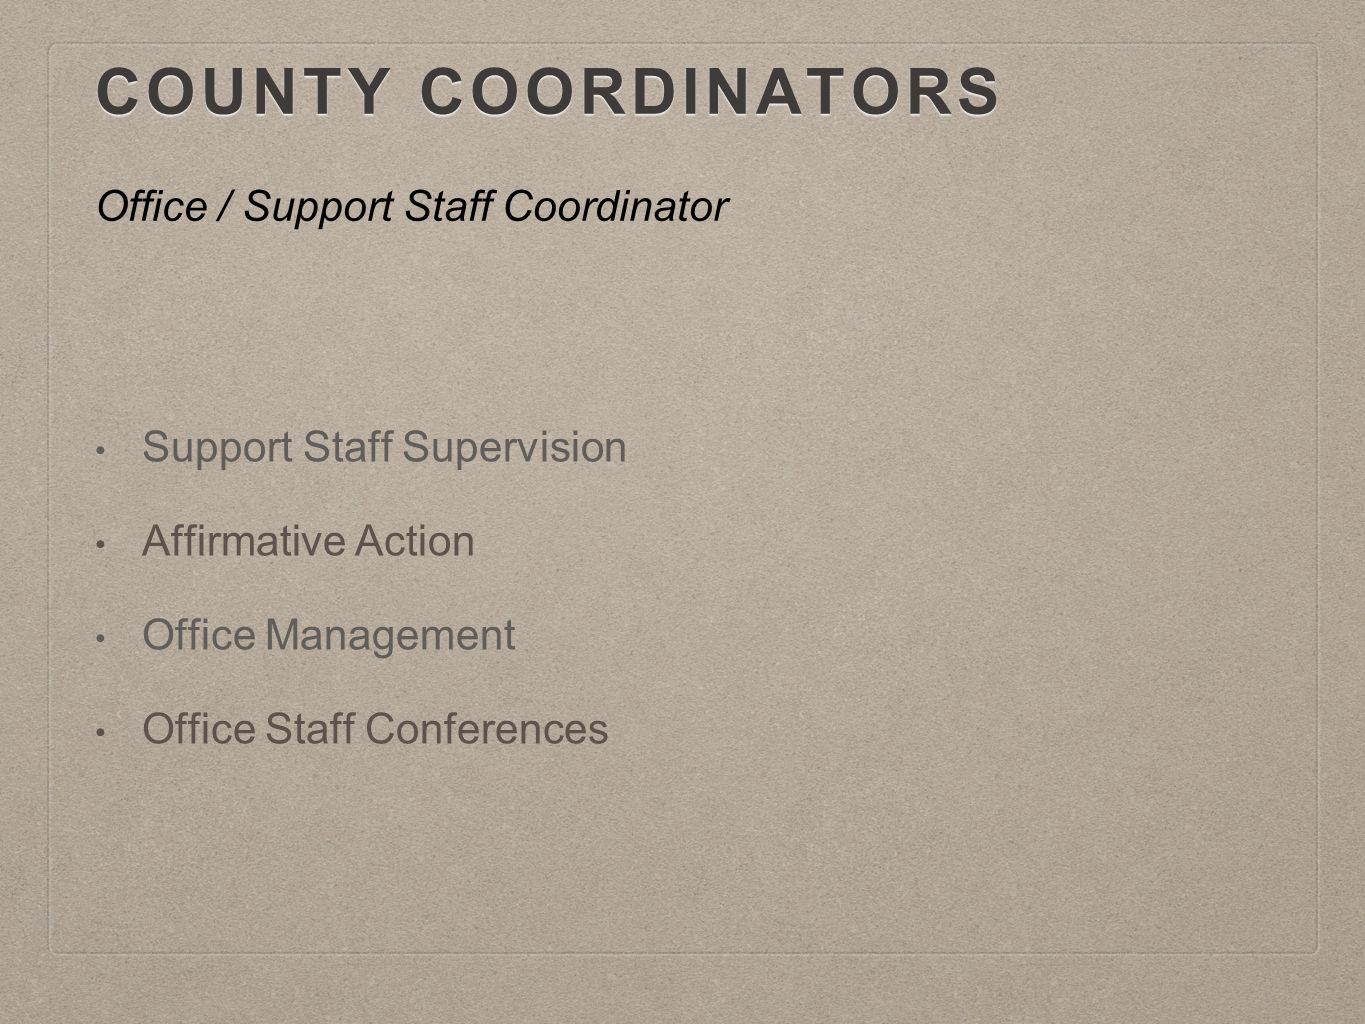 COUNTY COORDINATORS COUNTY COORDINATORS Office / Support Staff Coordinator Support Staff Supervision Affirmative Action Office Management Office Staff Conferences